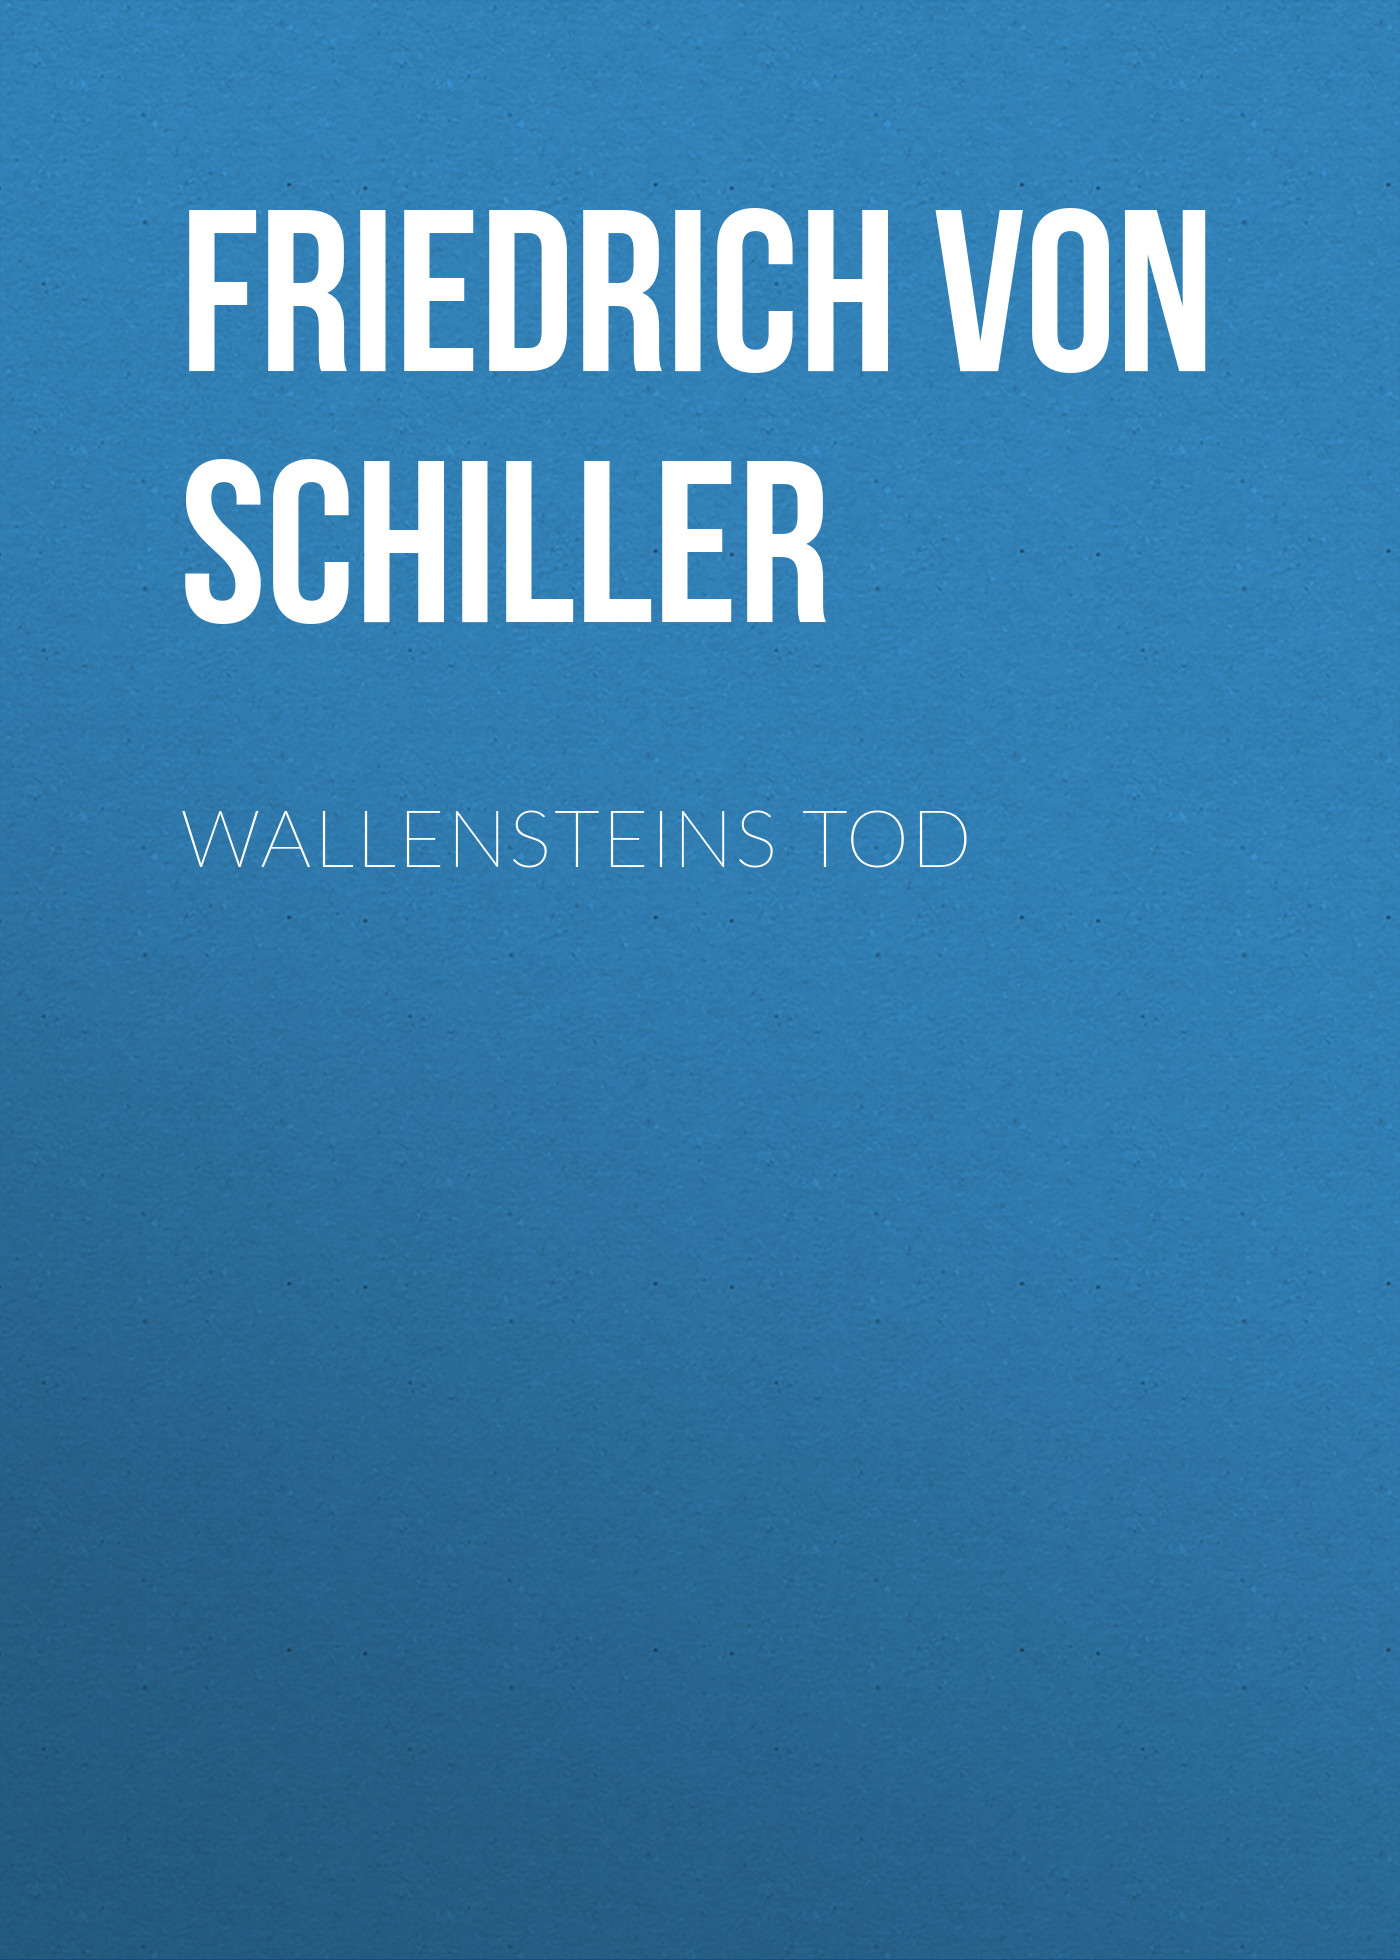 Friedrich von Schiller Wallensteins Tod туалетный столик european and american antique furniture